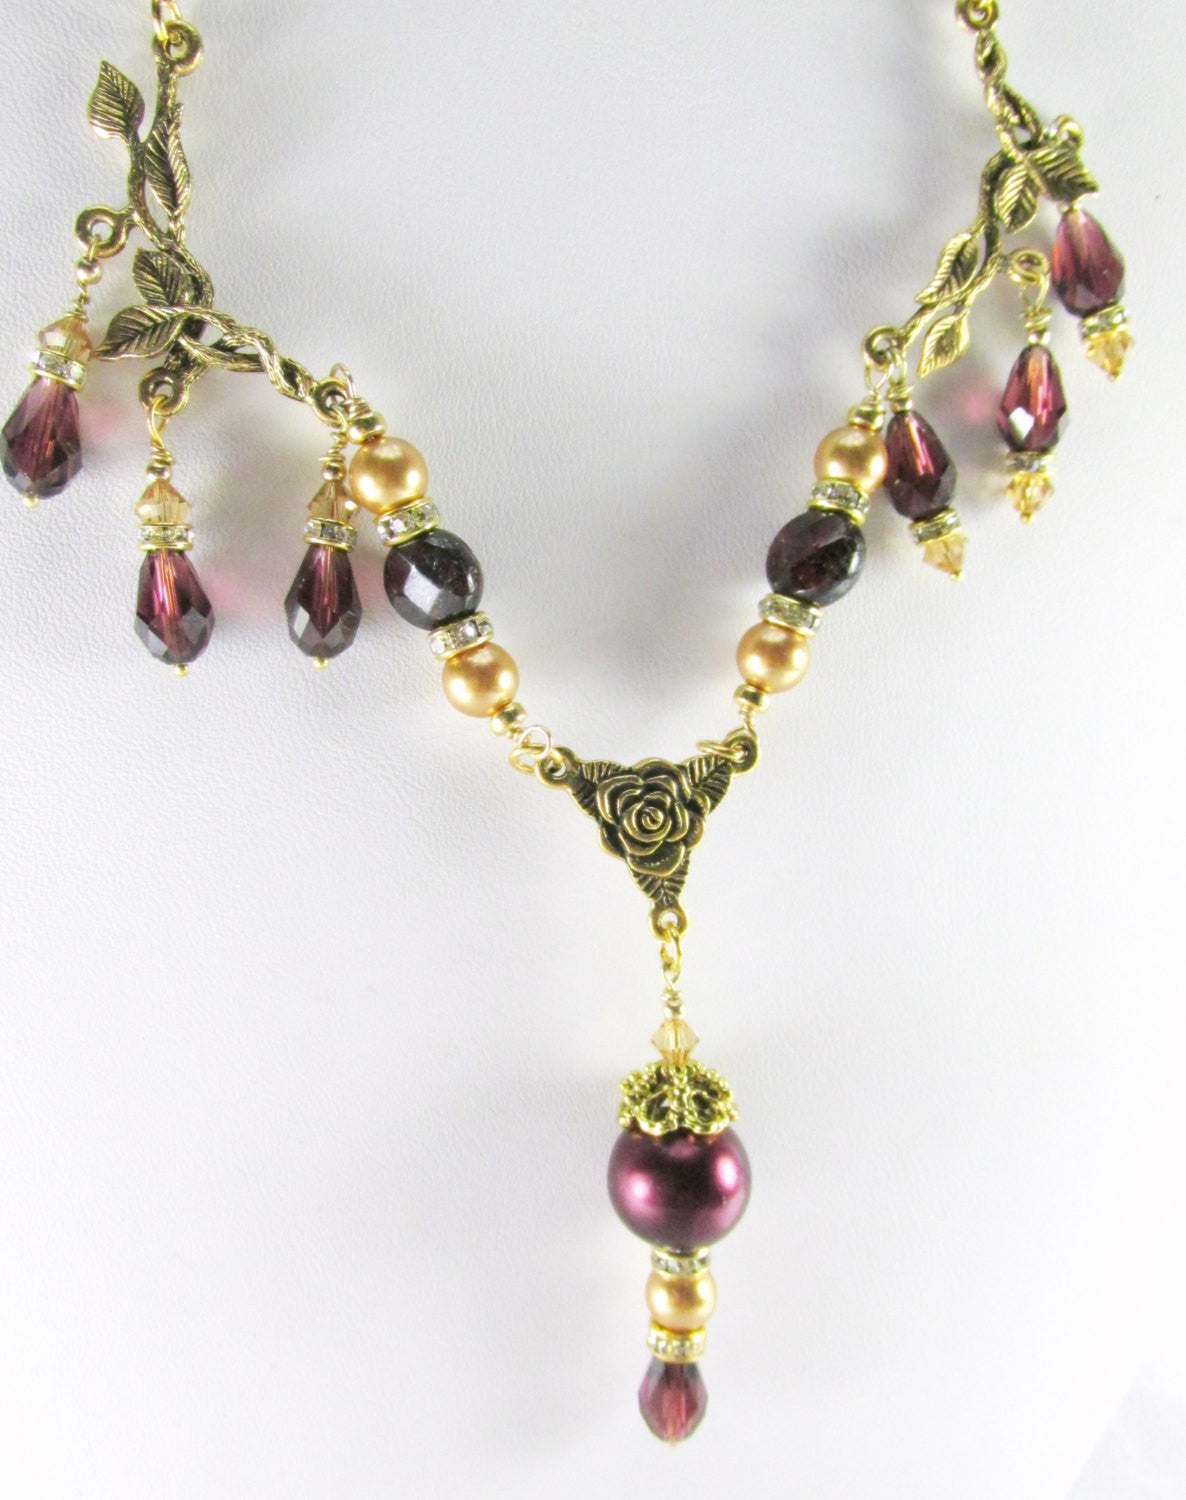 Vintage inspired Bridal or Bridemaid Necklace in Blackberry Burgundy and Light Gold Swarovski Pearls, Crystals, and Faceted Garnet gemstones - Odyssey Creations